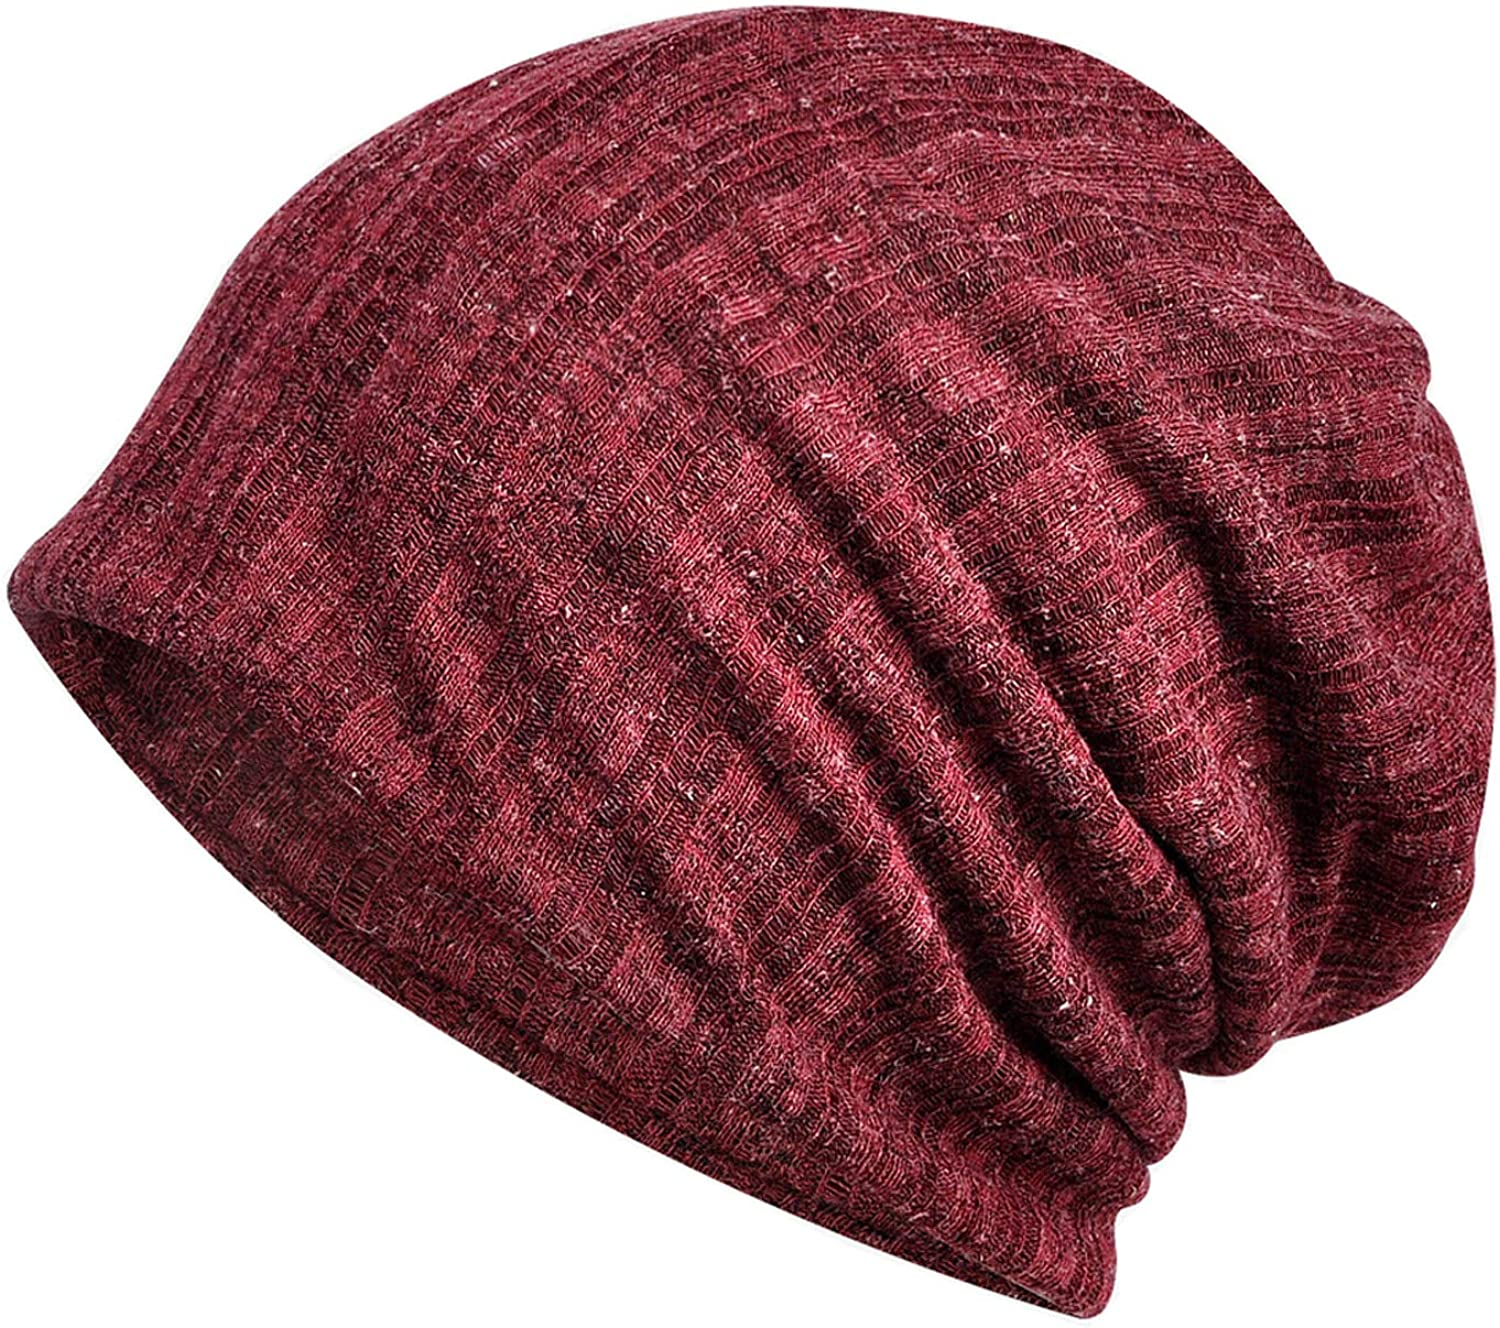 FUNSQUARE Fashion Beanies Cotton Hats Chemo Caps Cancer Headwear Skull Cap Turban Knitted hat for Women and Men (Claret-B) at  Women's Clothing store